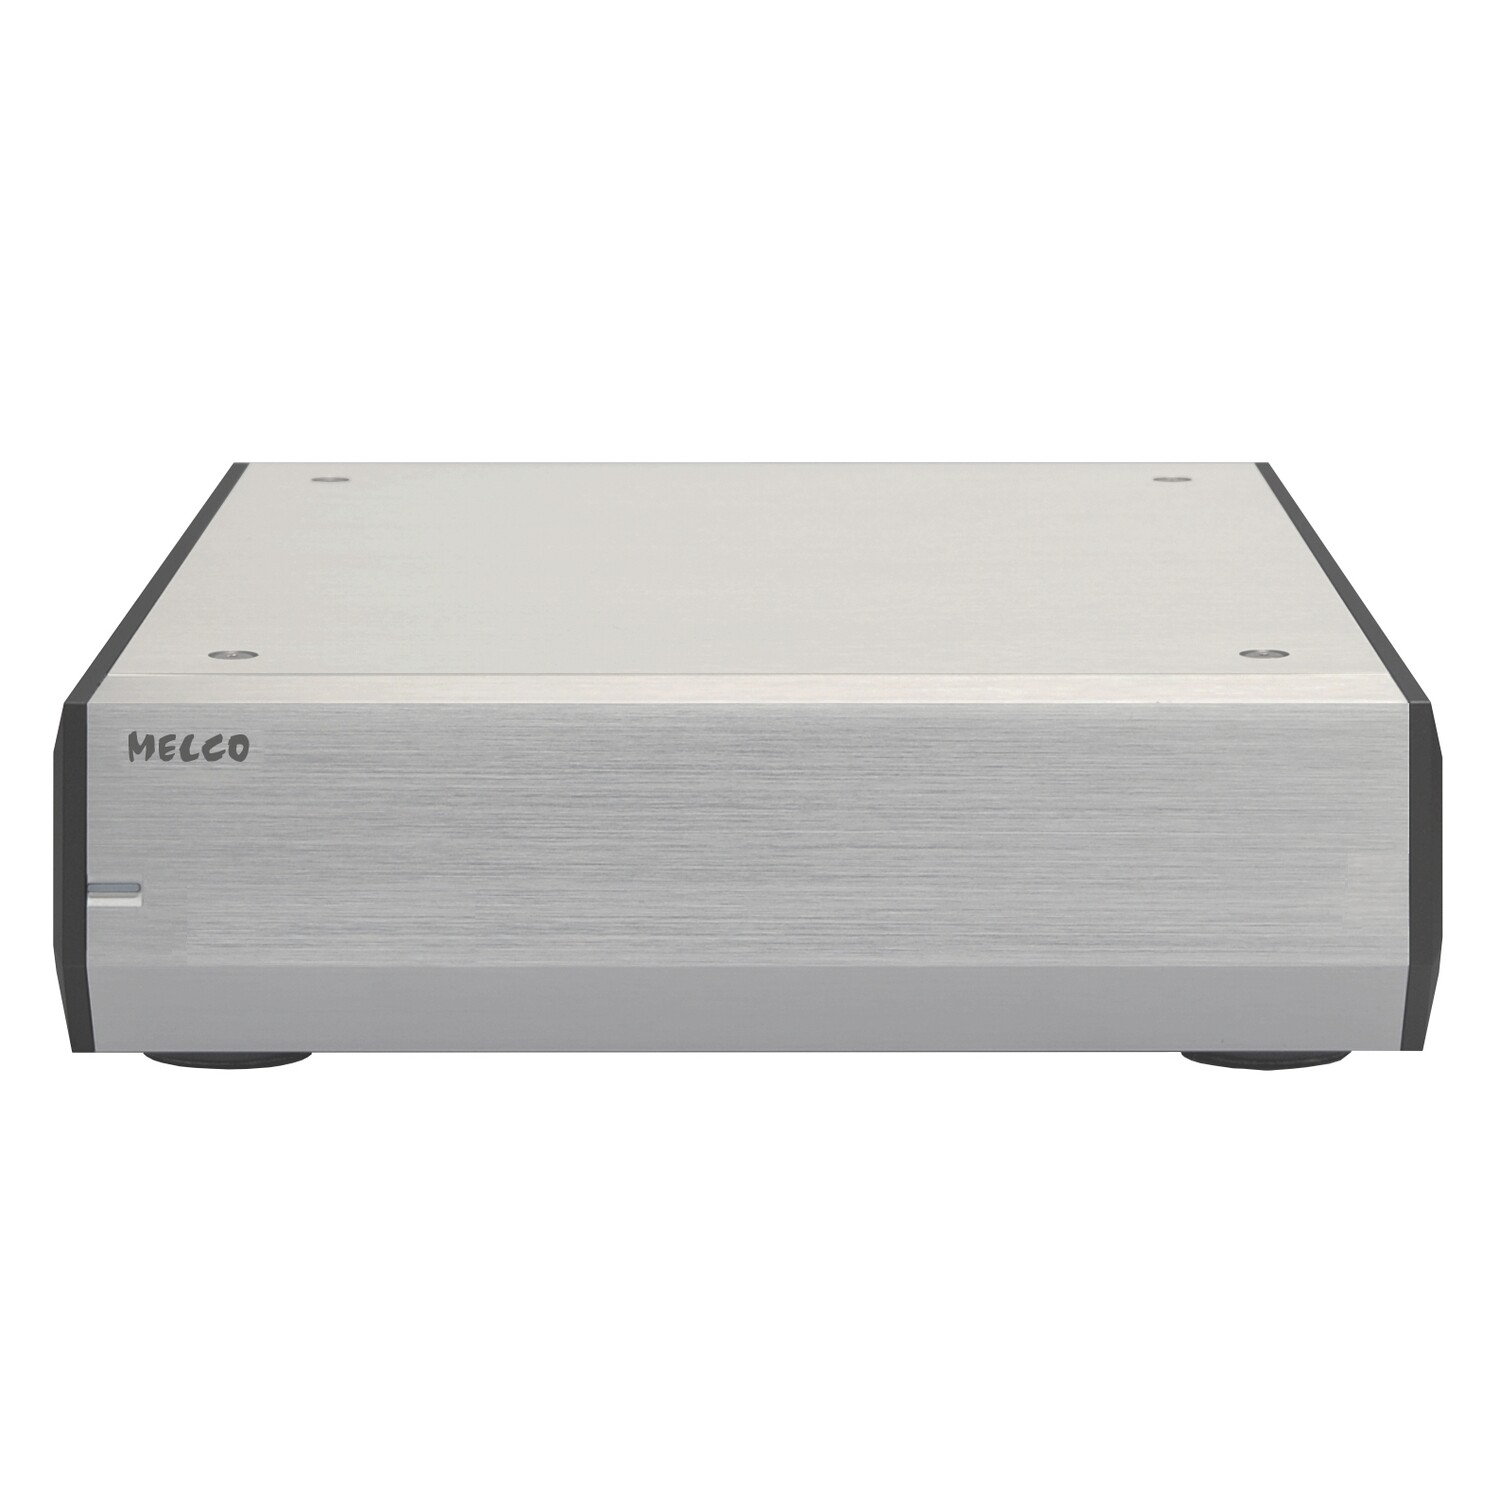 Melco S100 AUDIOSWITCH